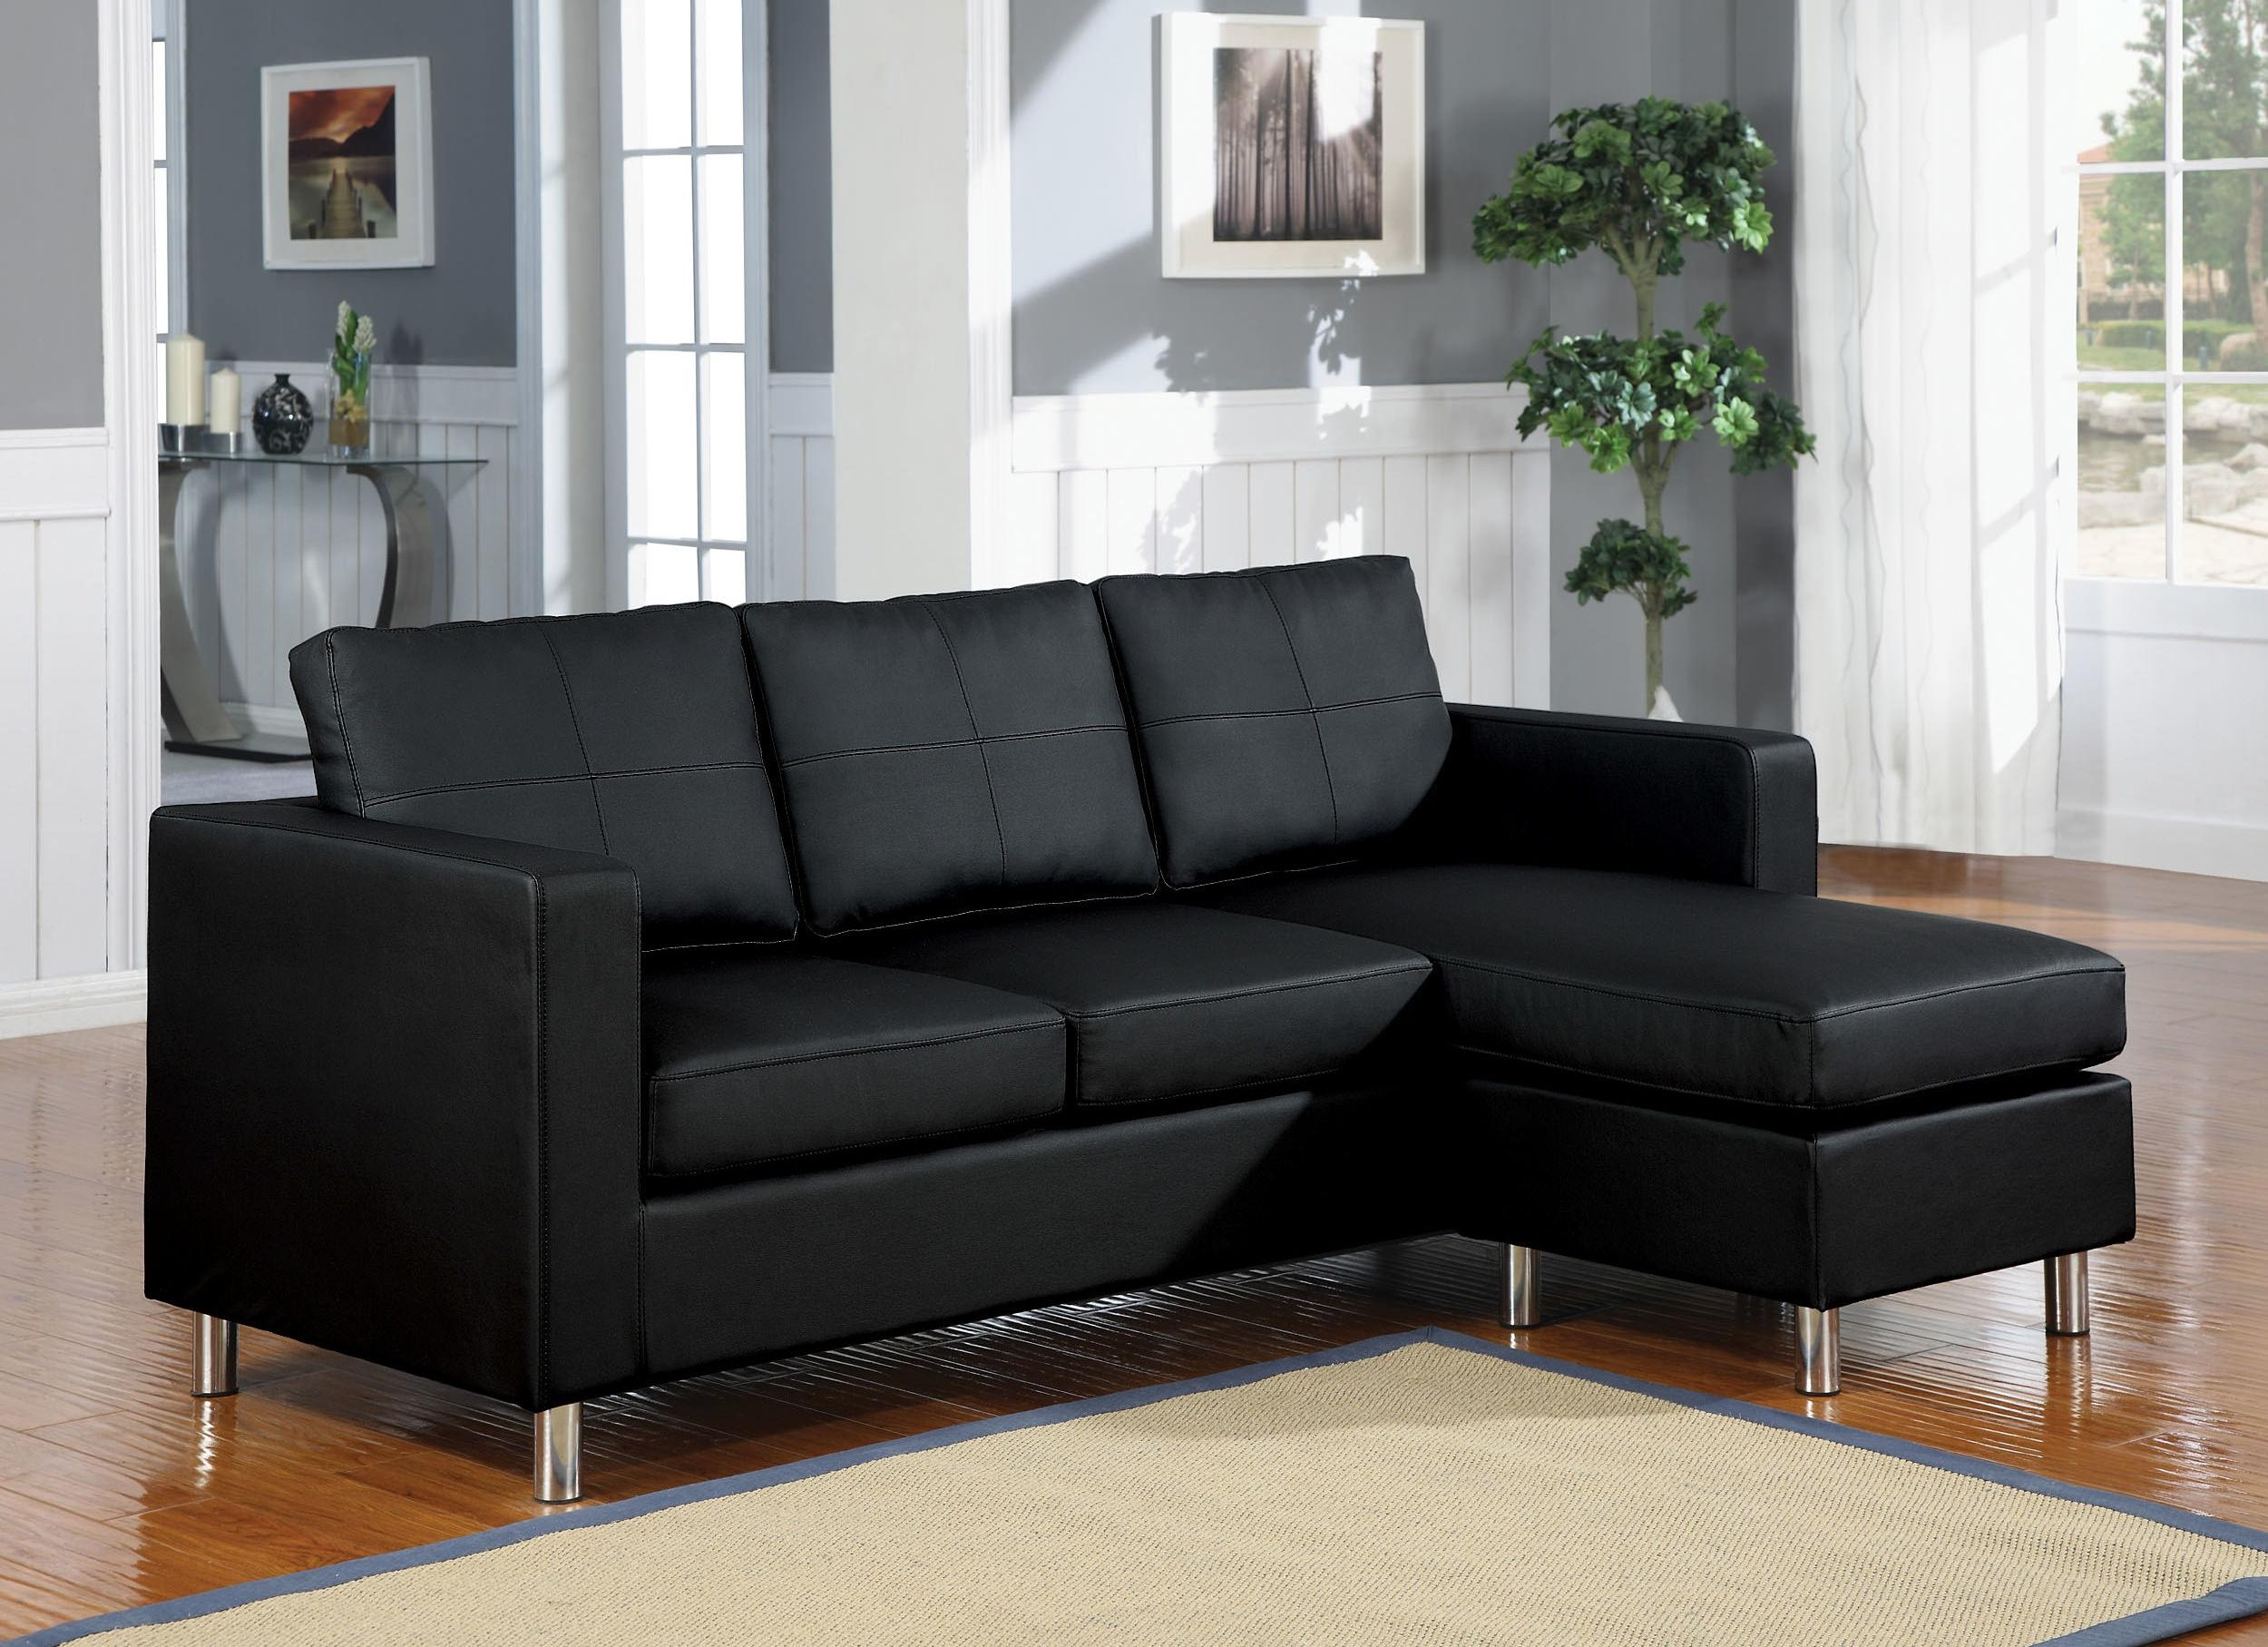 Furniture & Sofa: Perfect Small Spaces Configurable Sectional Sofa Inside Sectional Small Spaces (Image 10 of 20)